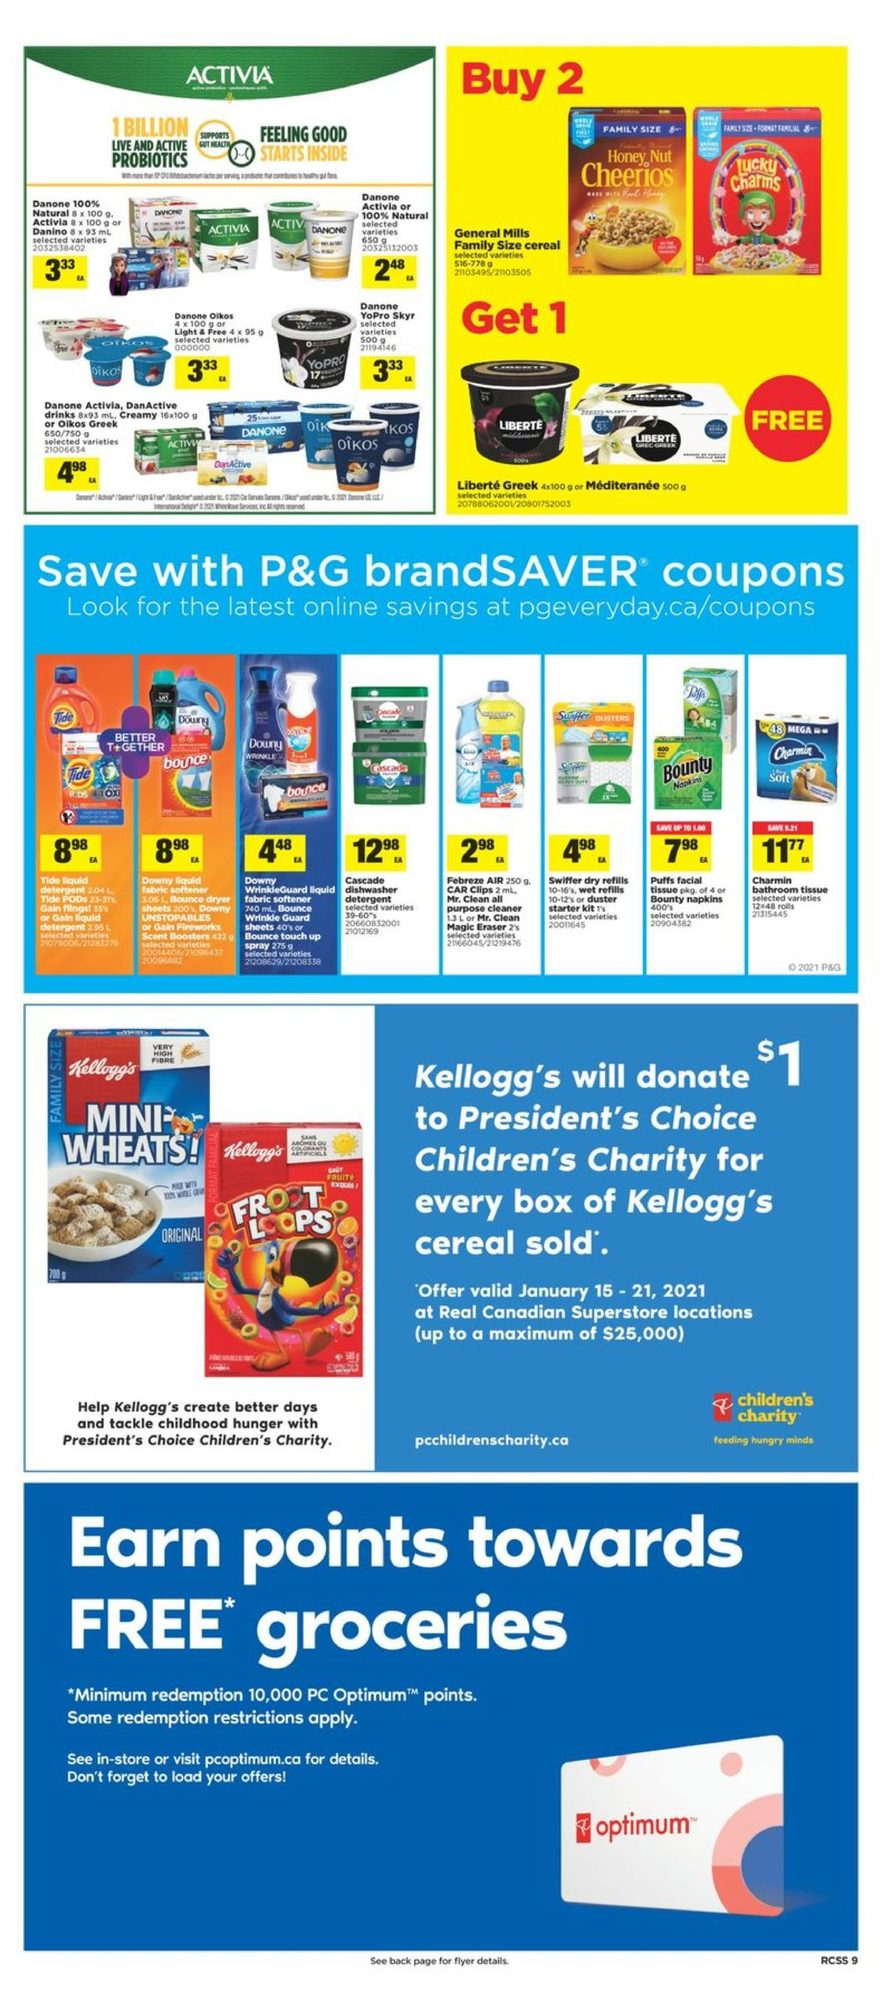 Real Canadian Superstore - Weekly Flyer Specials - Page 9